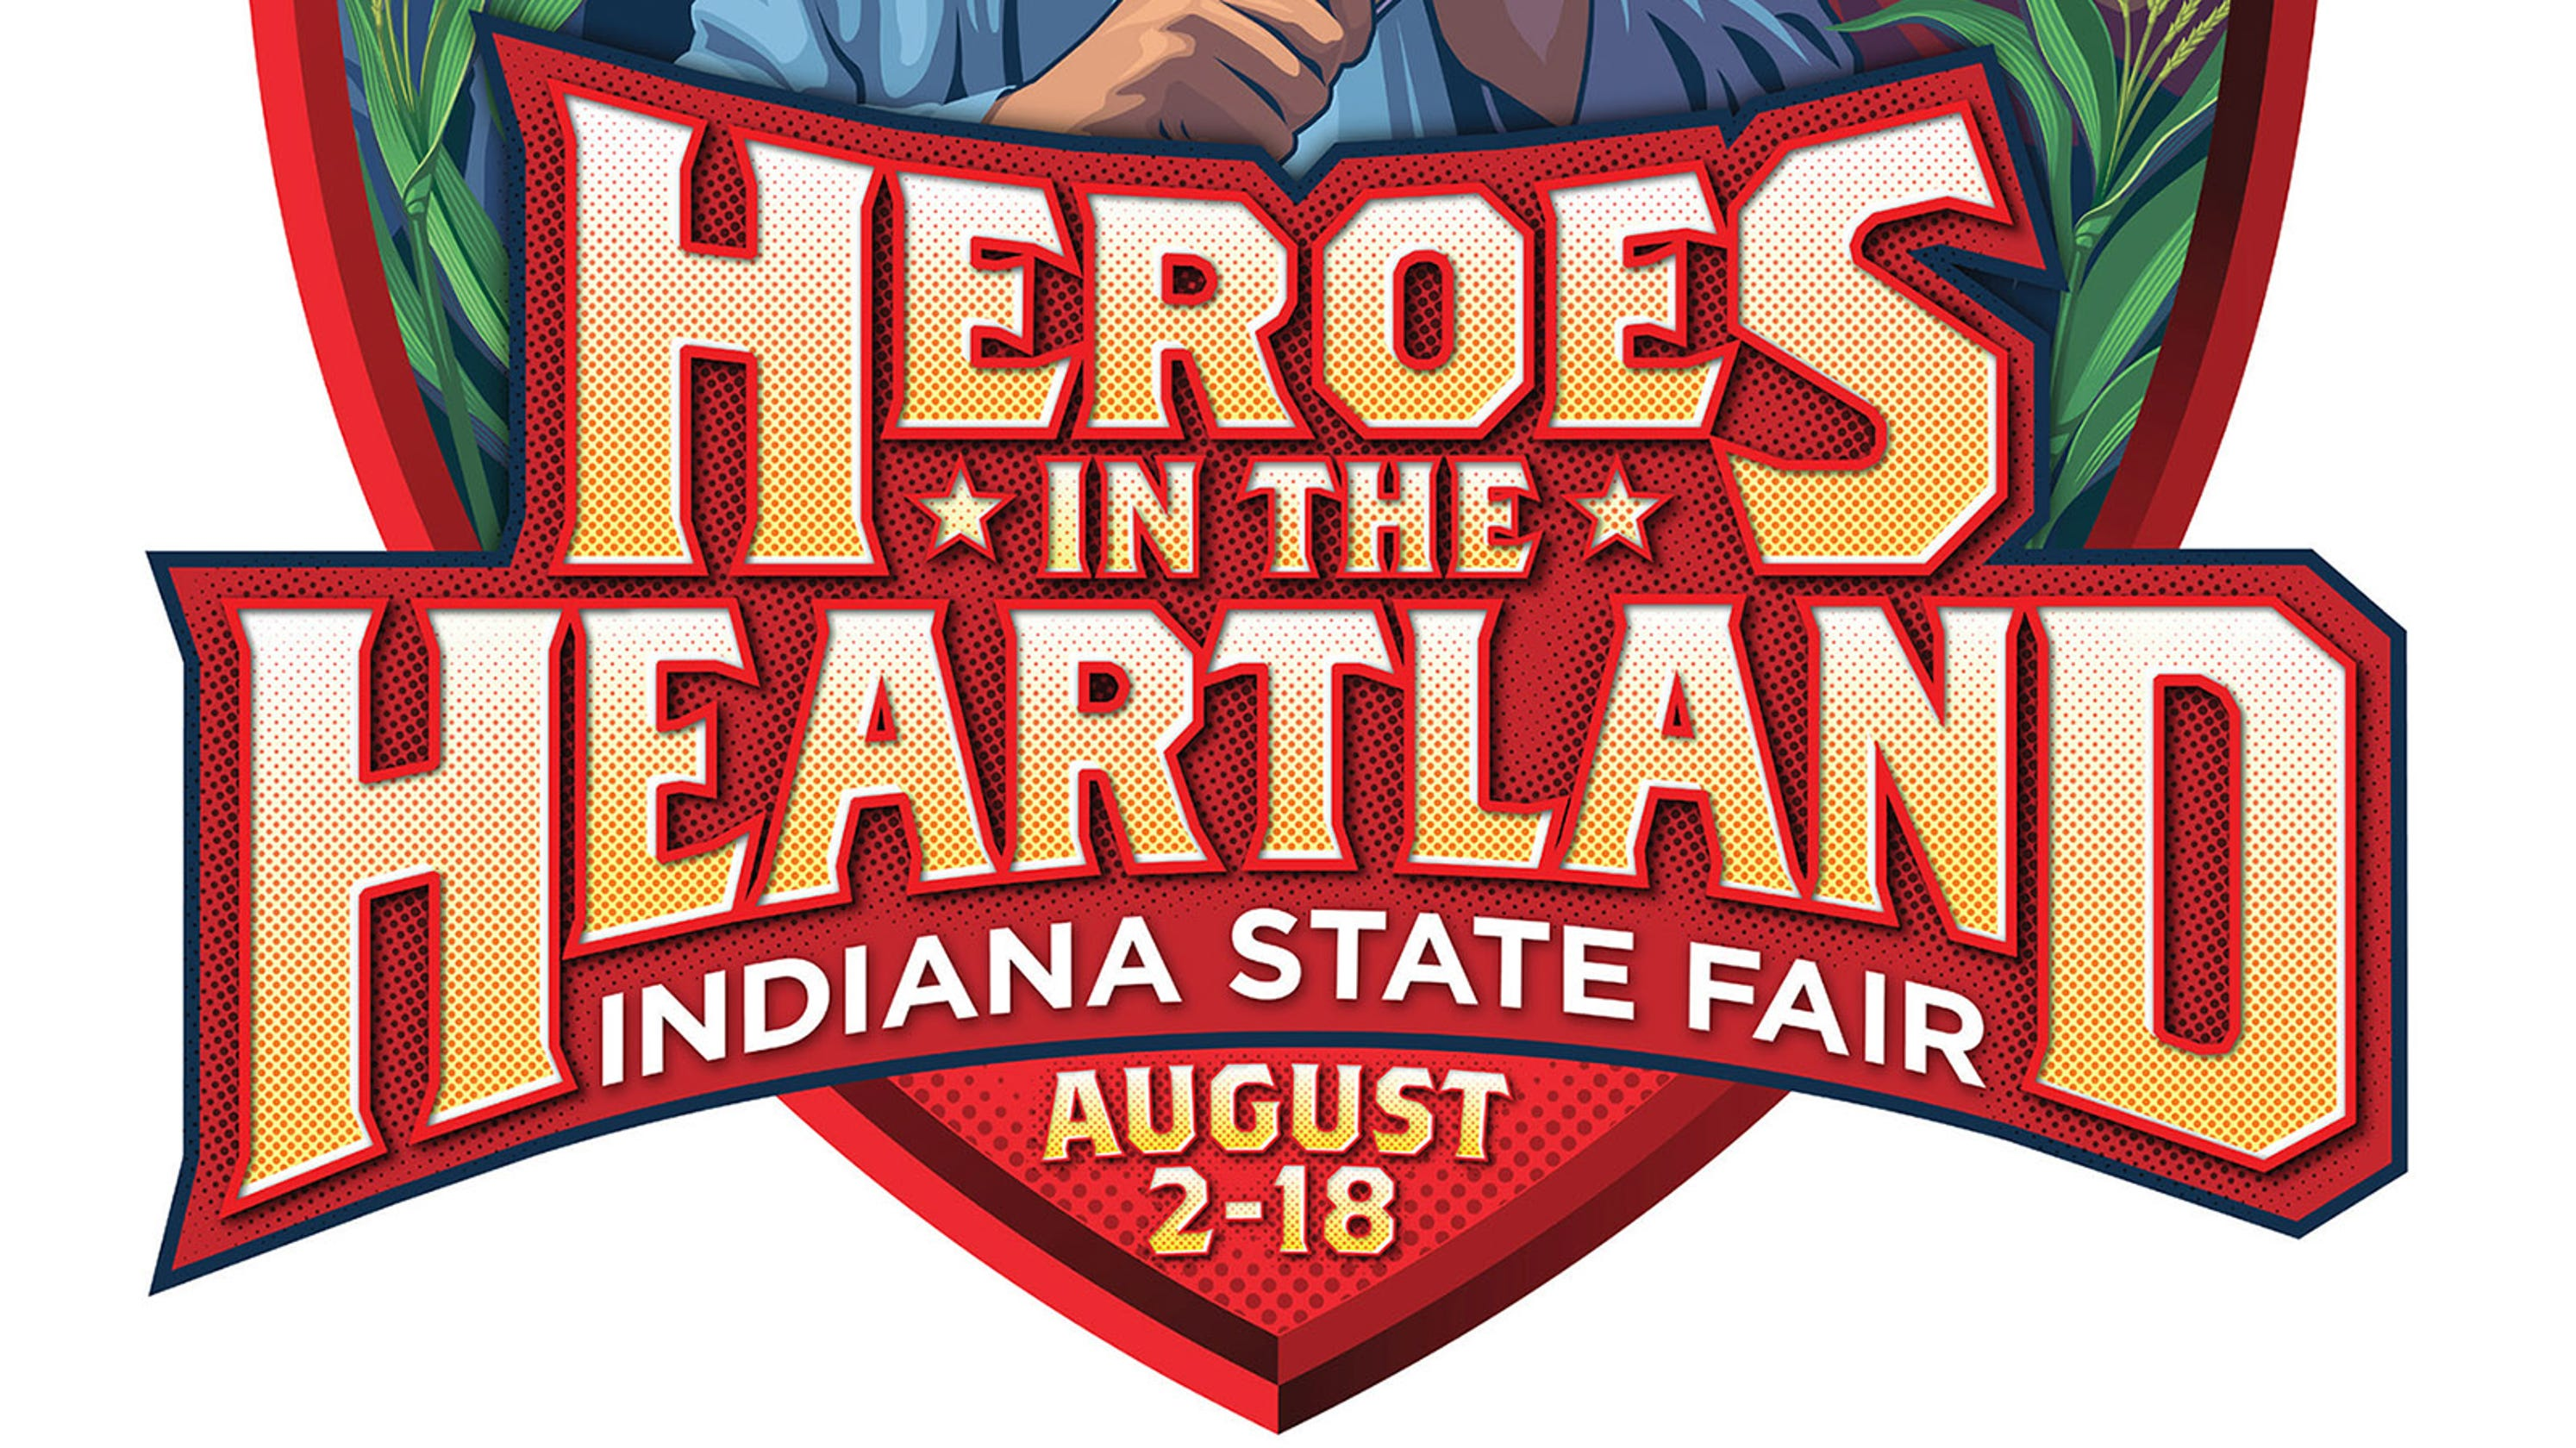 Here's the theme for the 2019 Indiana State Fair